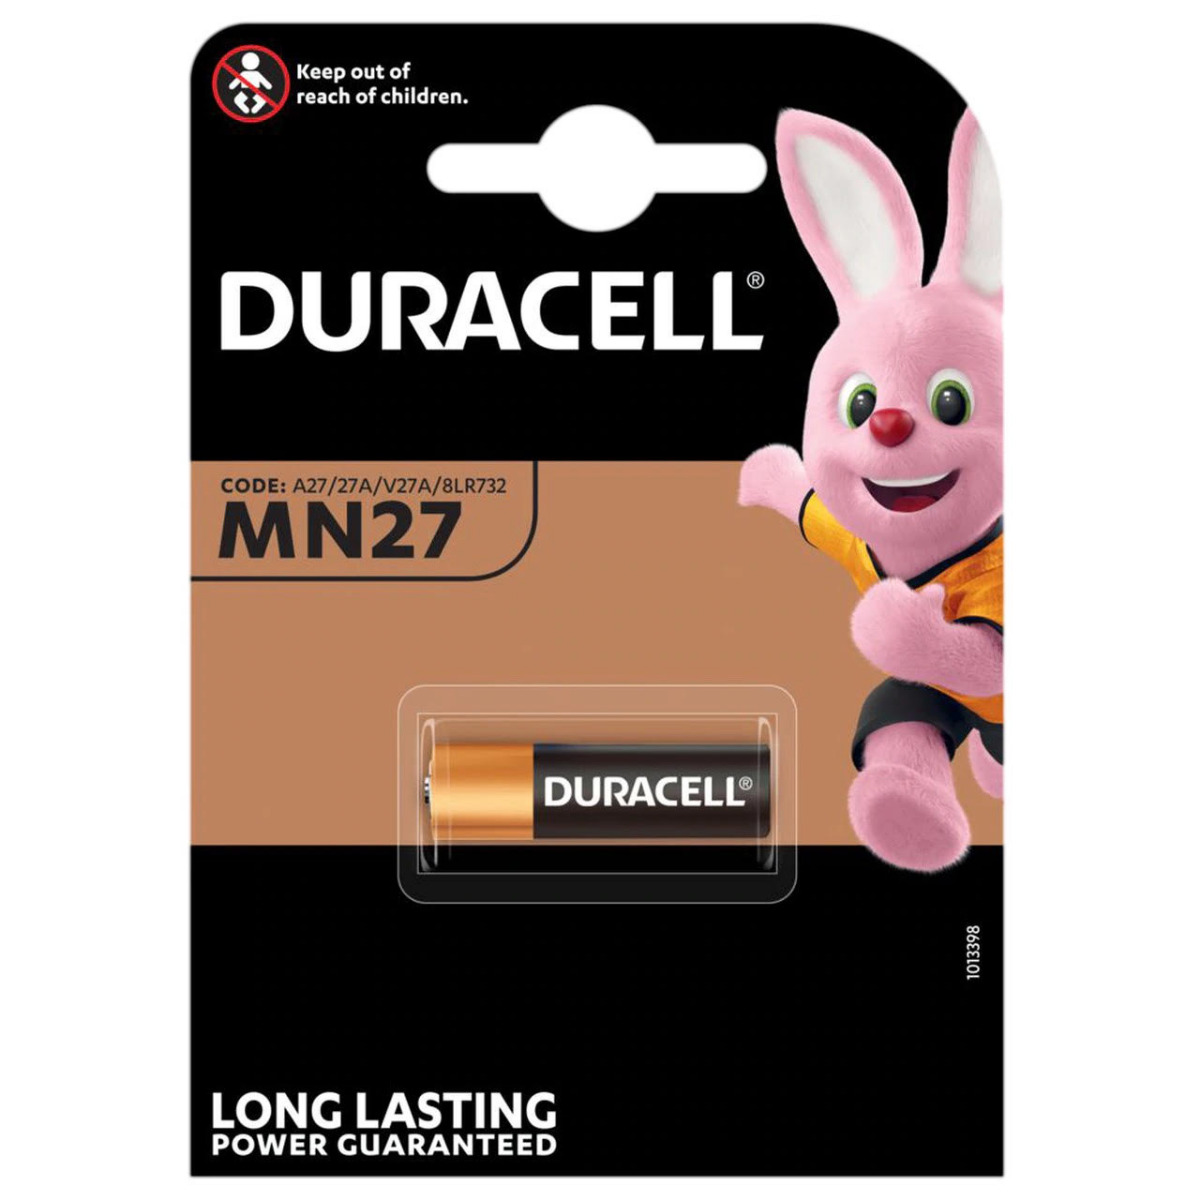 Duracell MN27 A27 12V Battery | 1 Pack